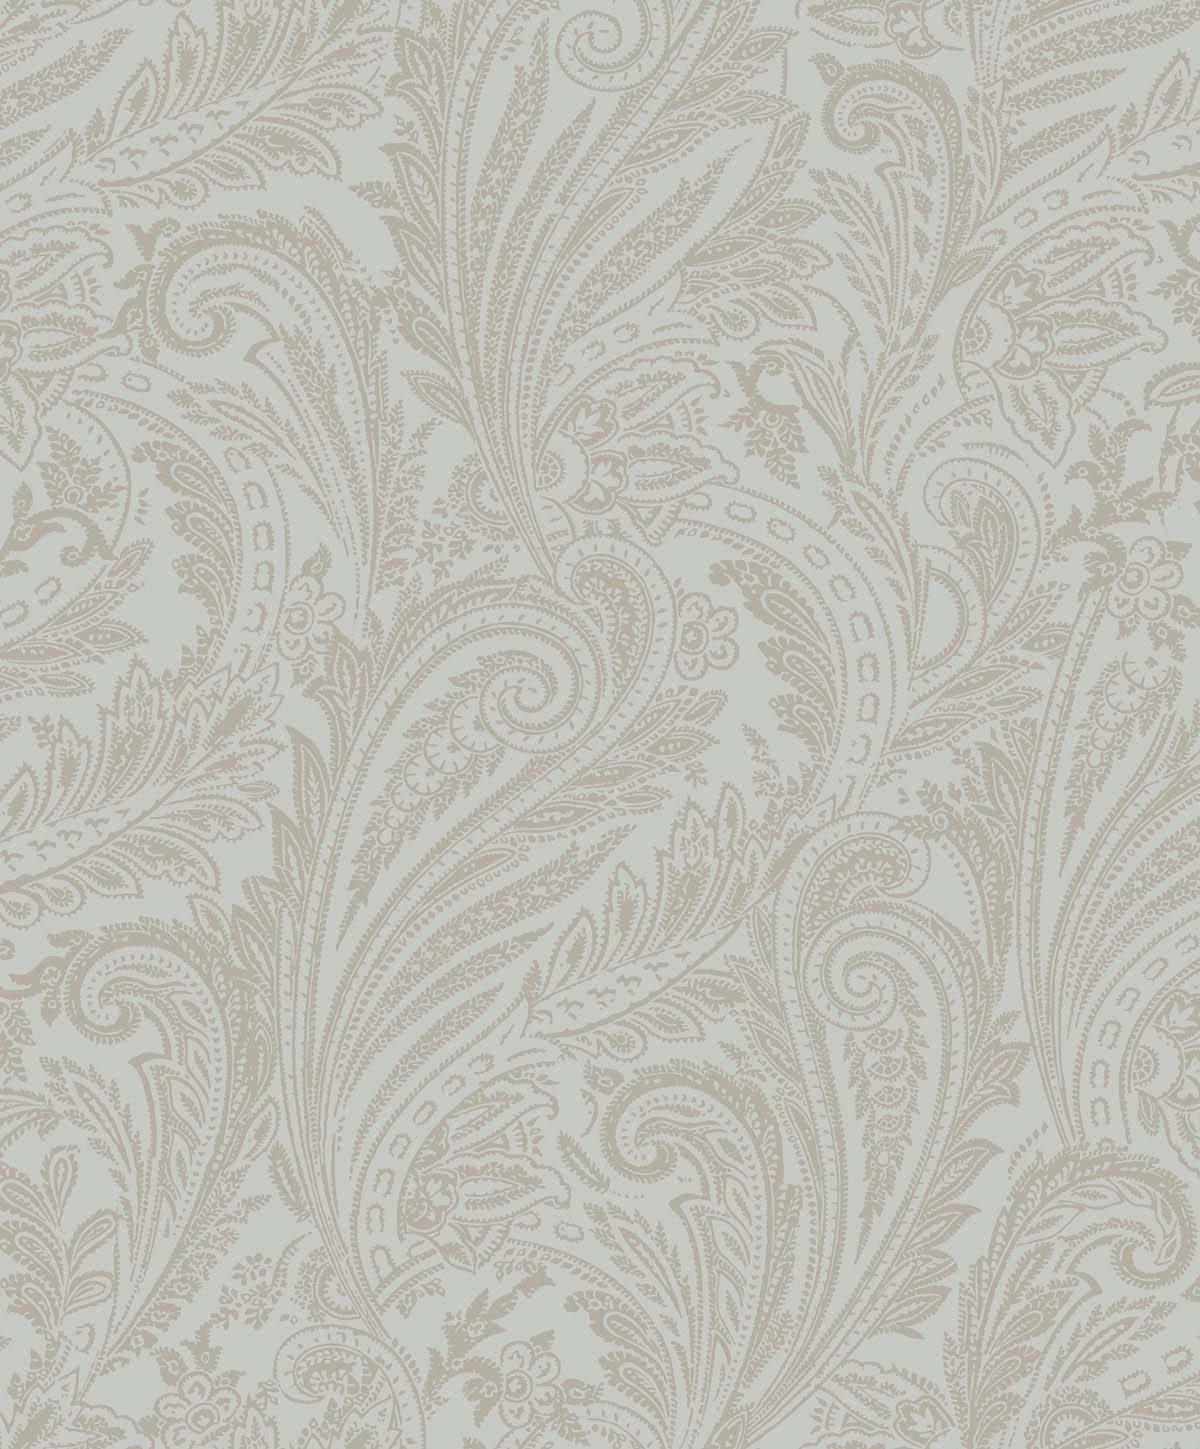 savile-row-wallpaper-paisley-SR00521